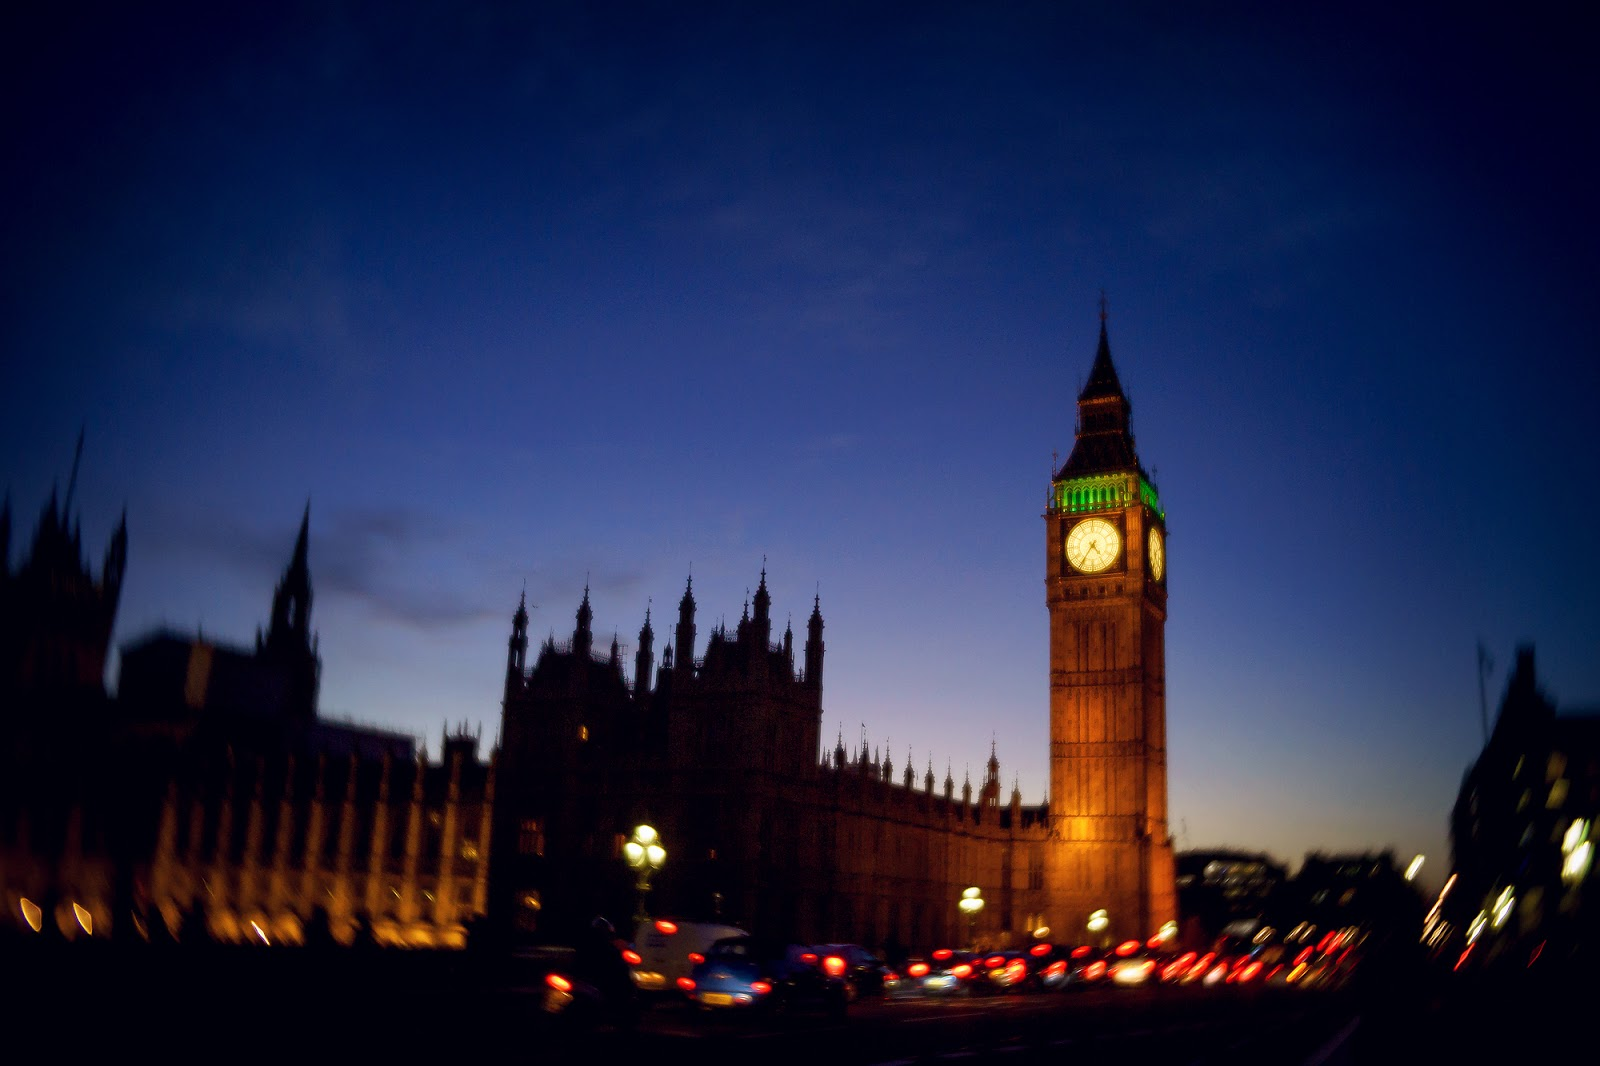 Lensbaby Velvet image of the Big Ben in London by Willie Kers